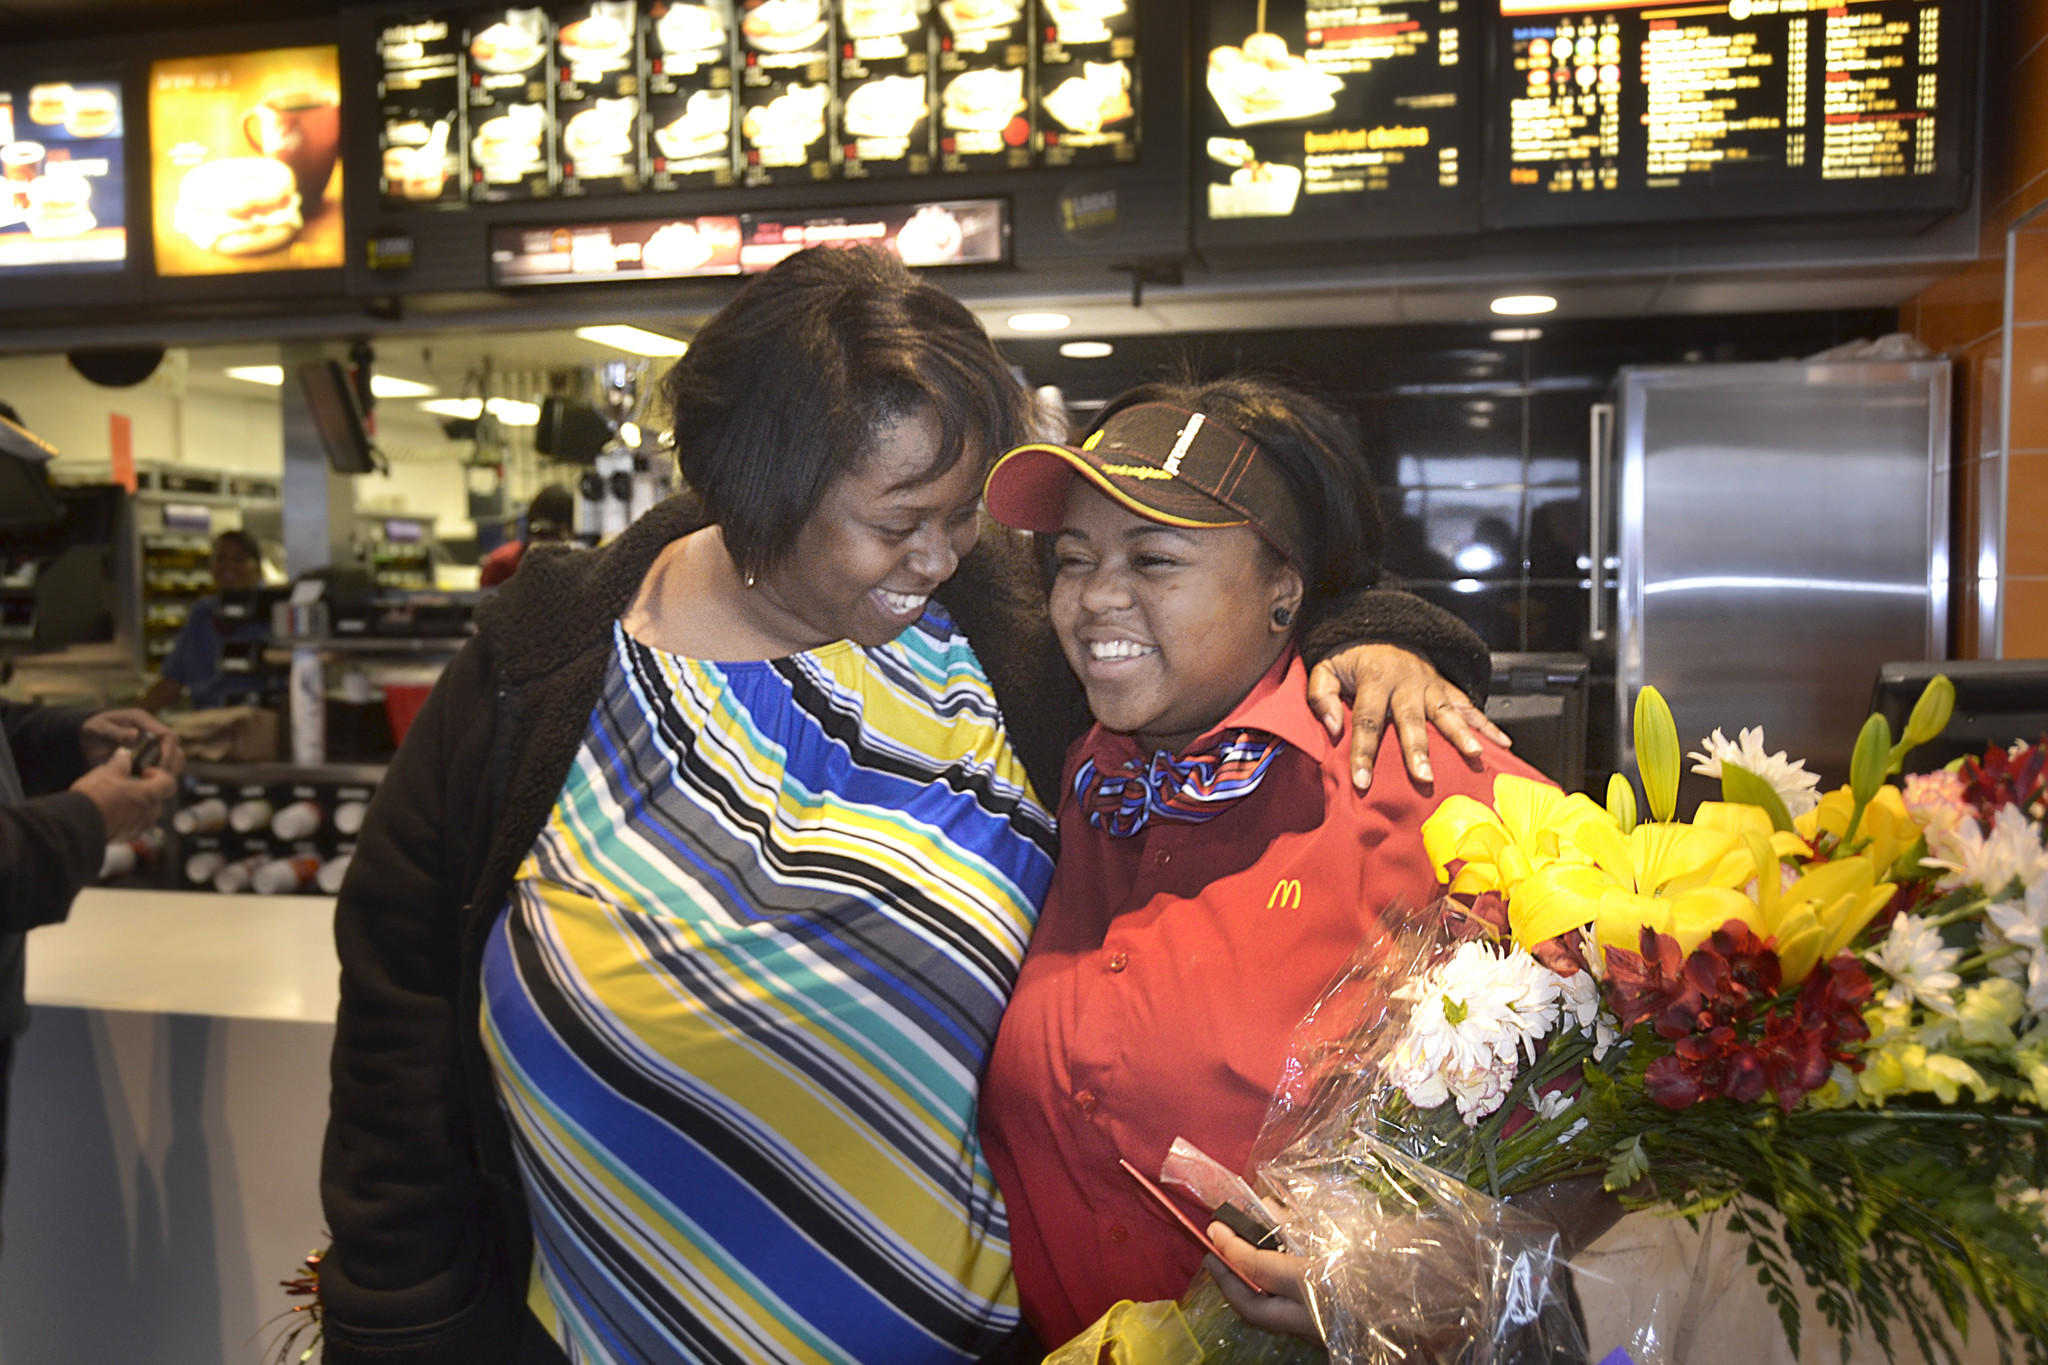 Brittany Jones (right) receives a hug from her mother, Shelia Jones (left), Wednesday morning after finding out she received one of 22 national McDonald?s Crew Member of the Year awards.